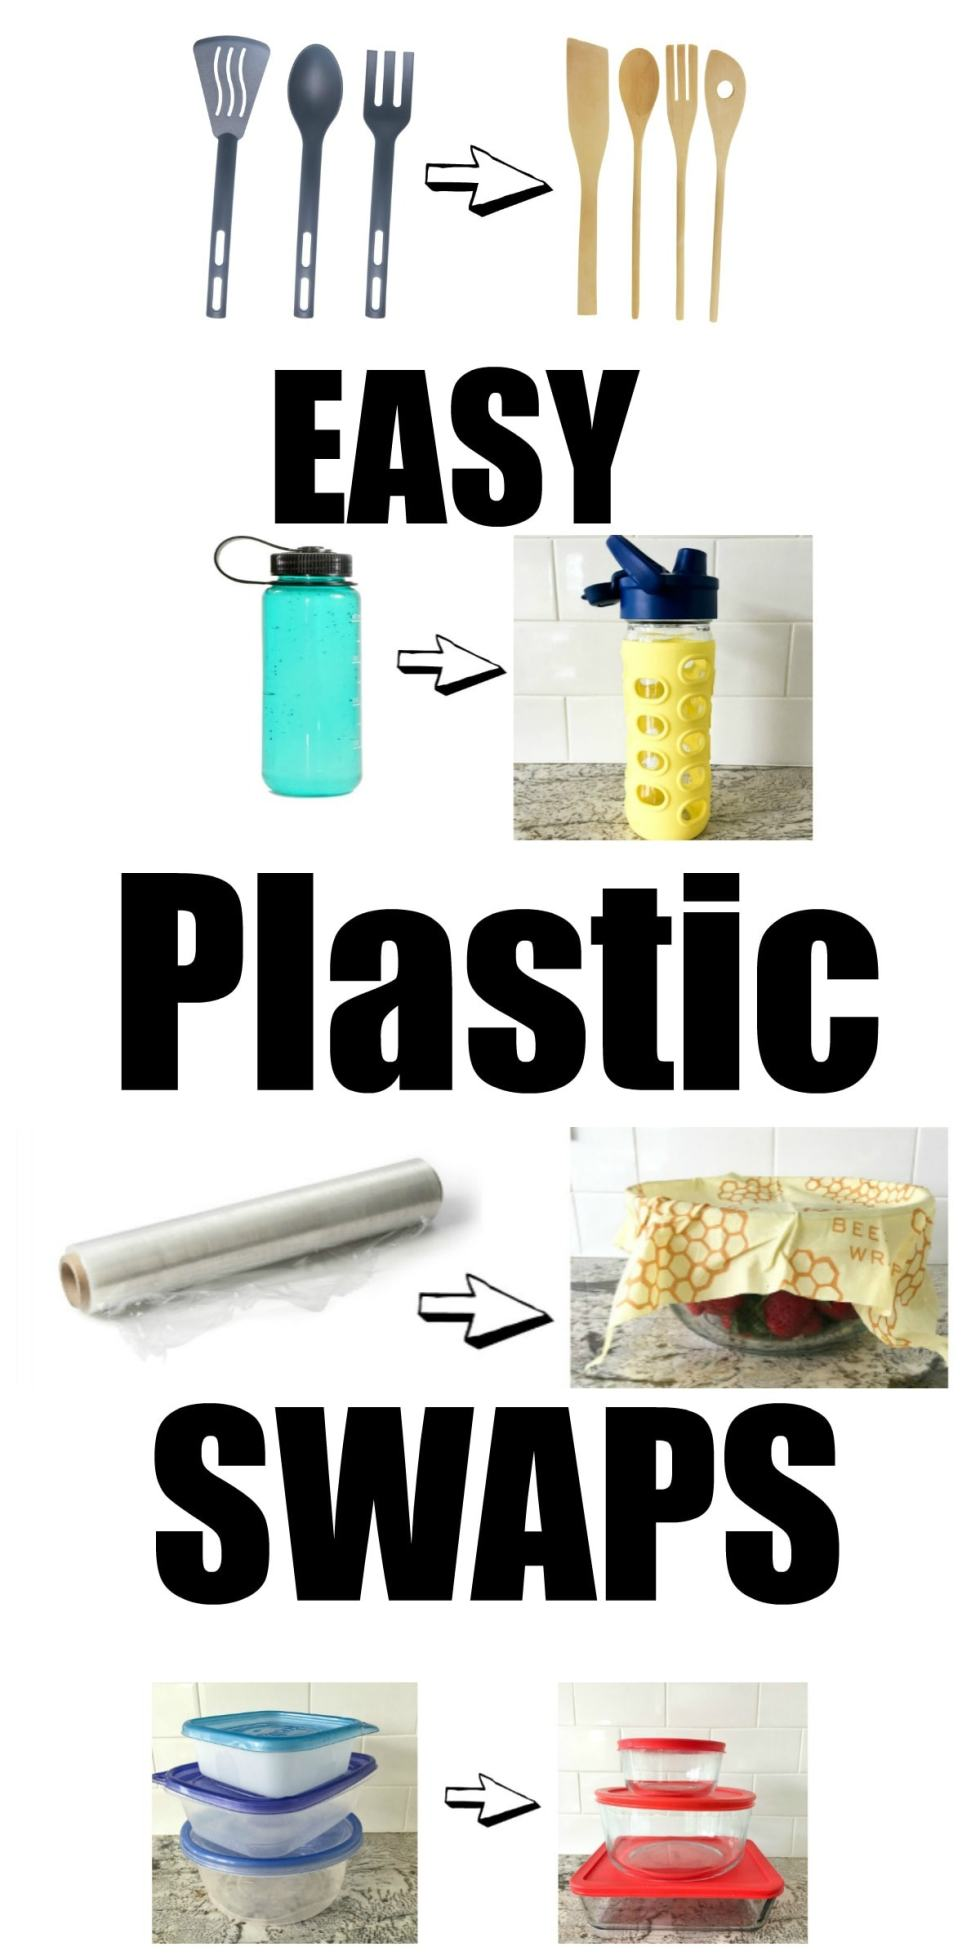 These Easy Plastic Swaps can make your home a healthier place. Plastic is in everything and may be secretly destroying your health. Here are some easy swaps you can use to get started getting rid of the toxic chemicals plastic adds to your life!